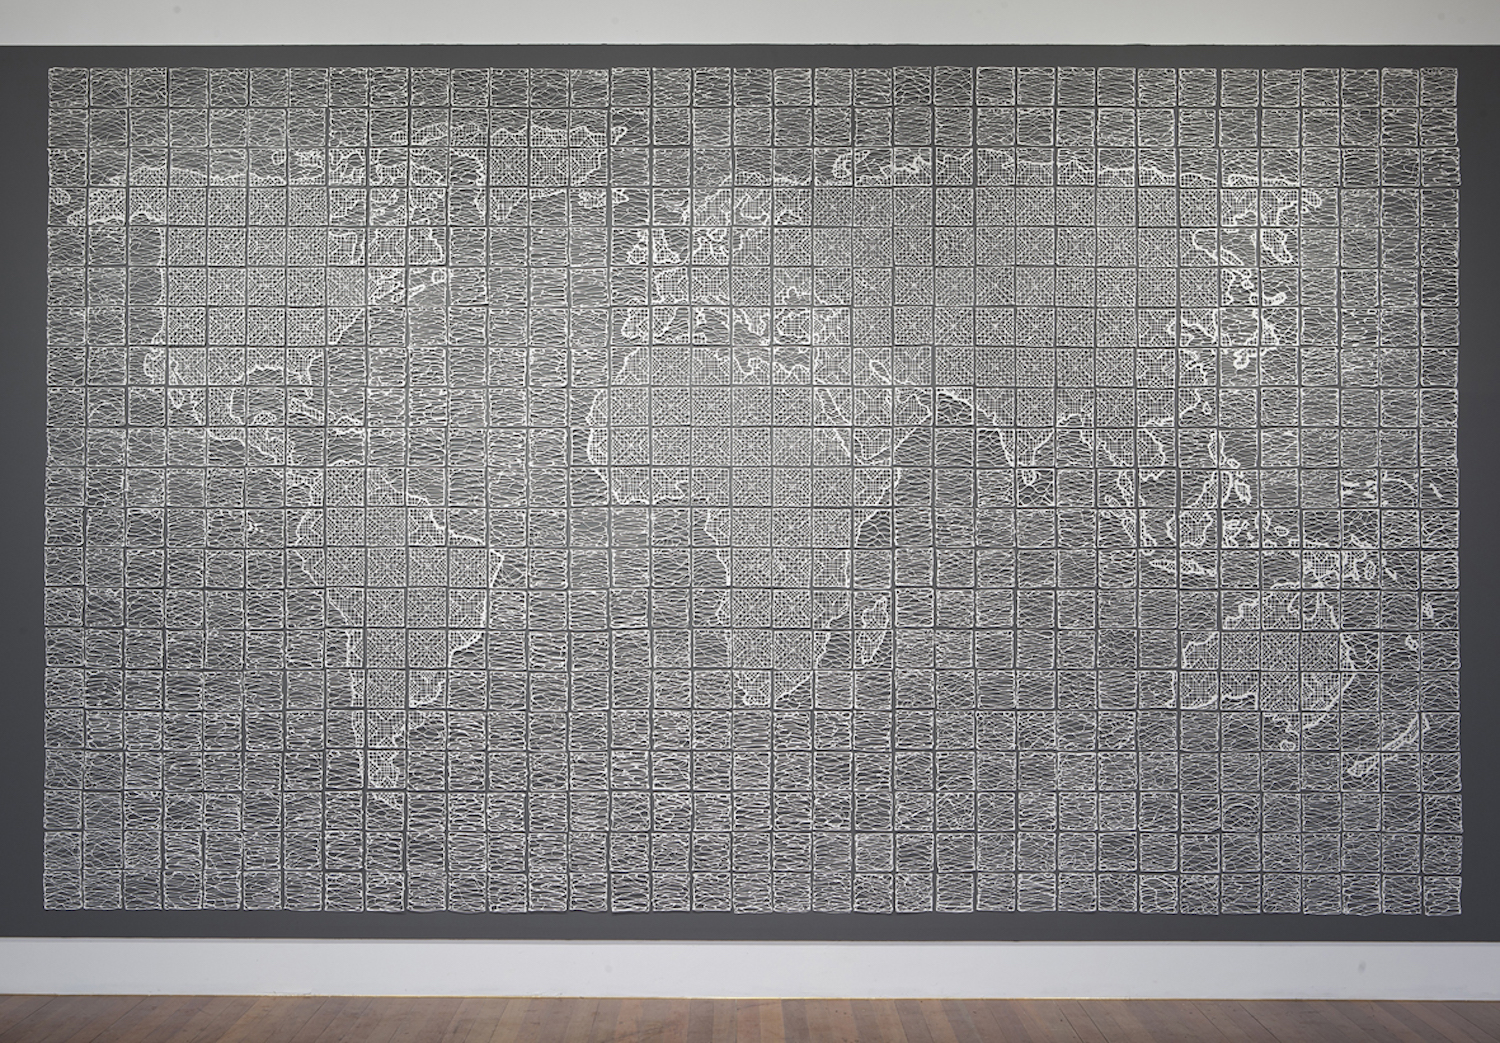 Isabel Ferrand, World Lace, 300x500cm, 740 porseleinen tegels (2013)